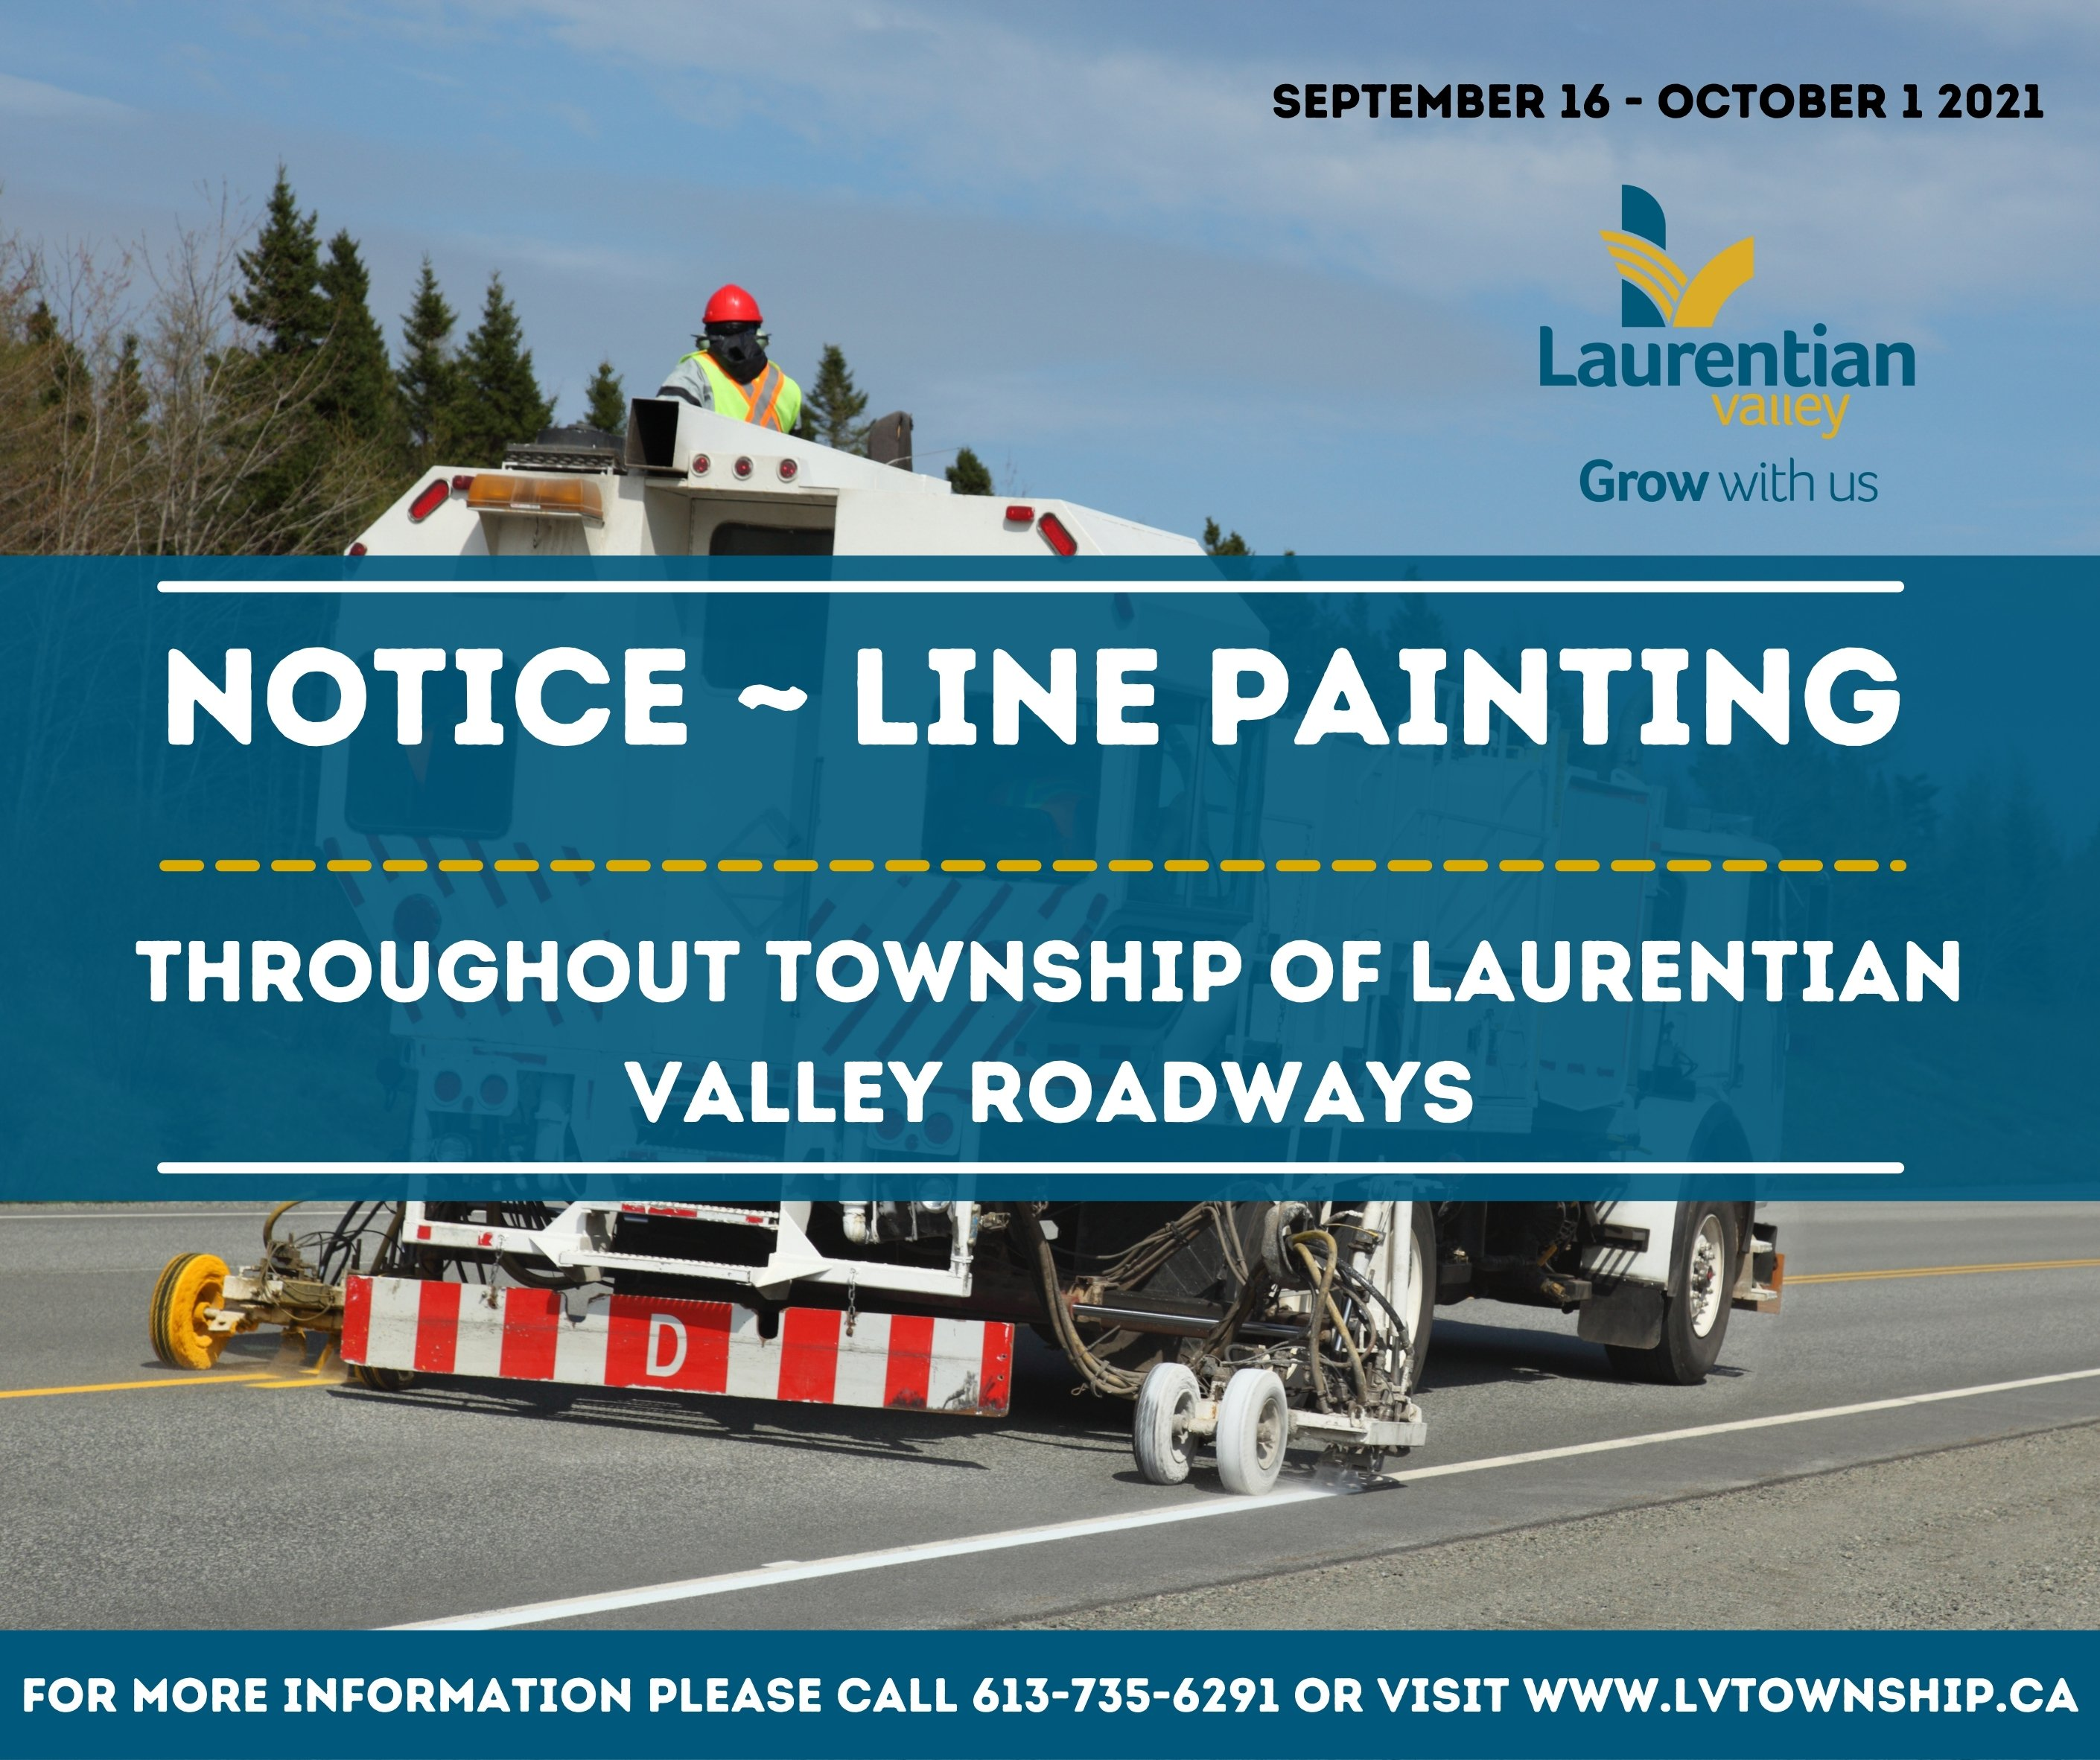 Graphic announcing line painting in LV from September 16 to October 1st.